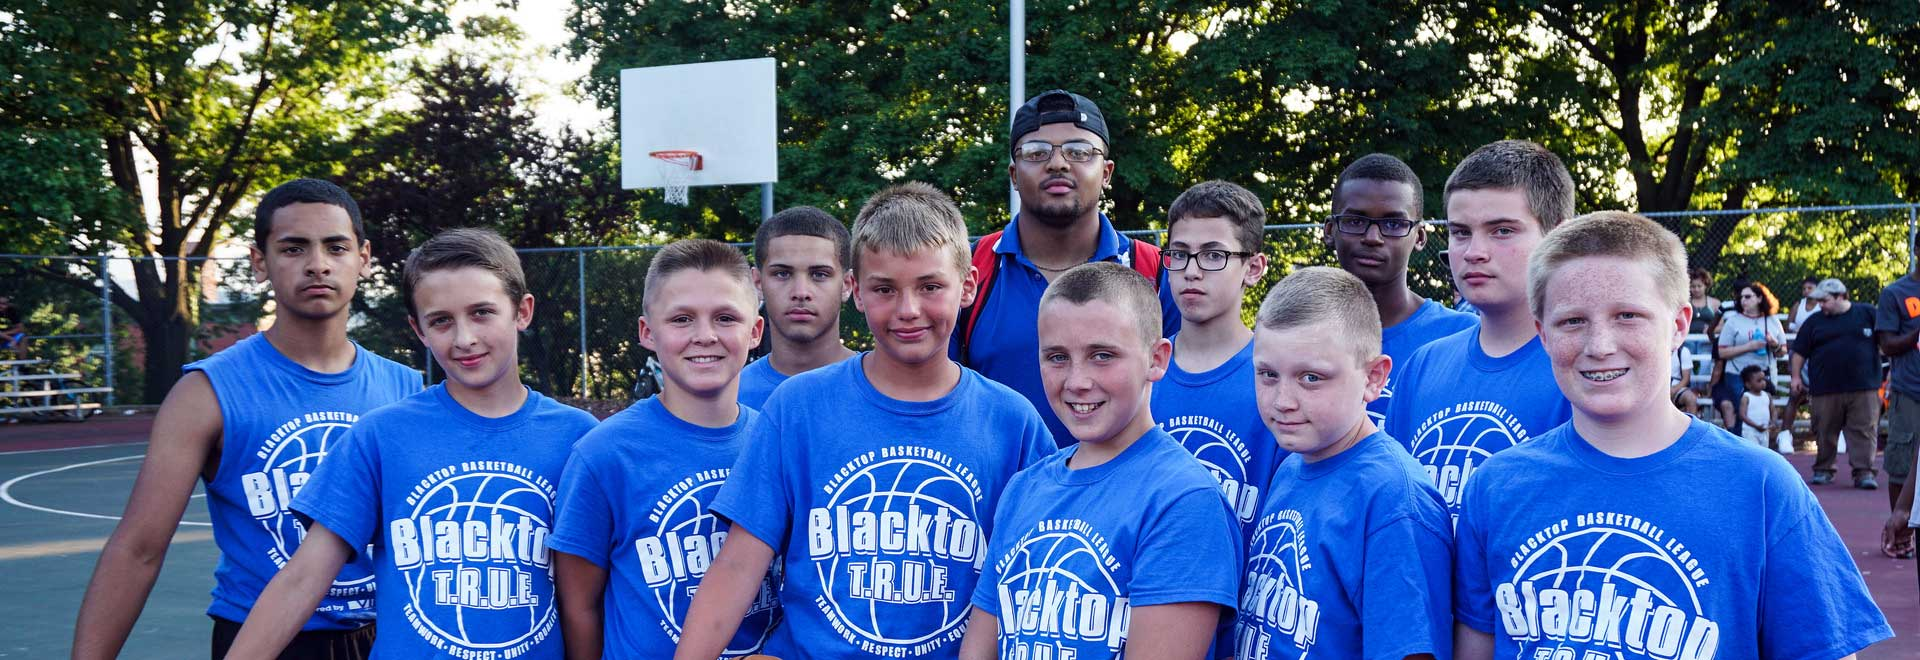 Blue team photo with coach and basketball net in background